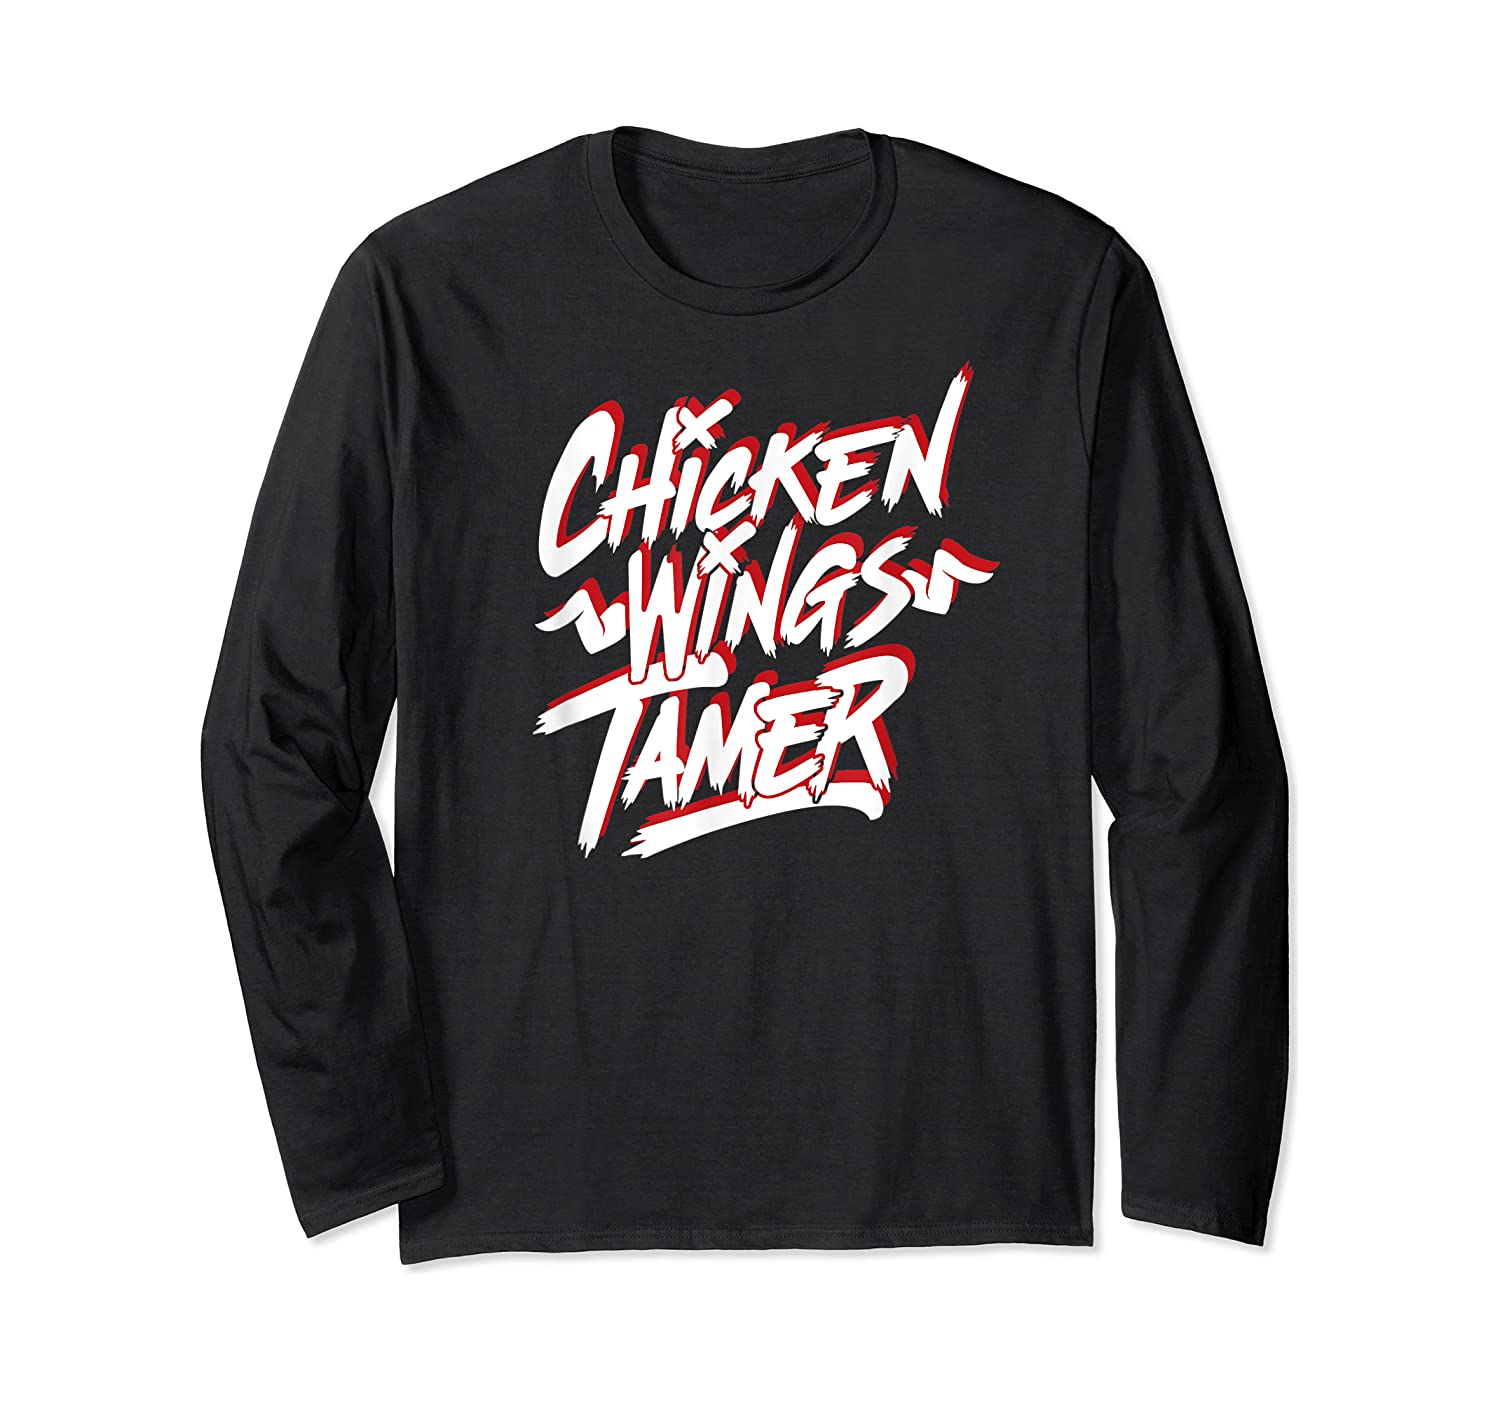 Humorous Chicken Wings Tamer Lover Gift Love Chicken Wing Shirts Long Sleeve T-shirt